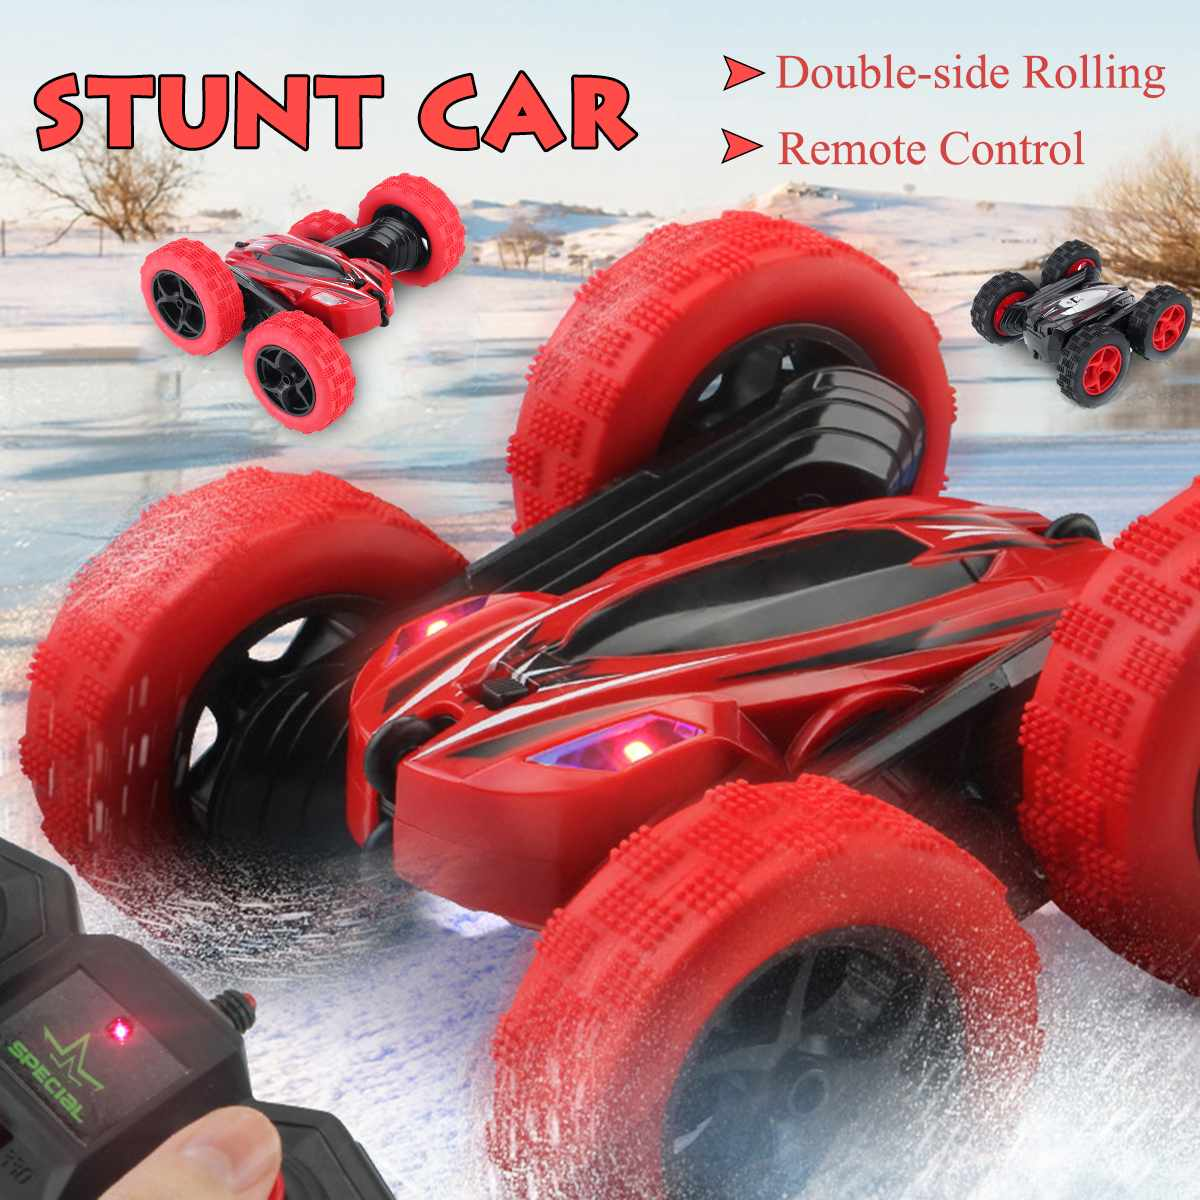 RC Flip Stunt Car 2.4G Remote Control Car Double-side Rolling 360 Degrees Rotating with Light 1:24 Modeling Toys for Kids